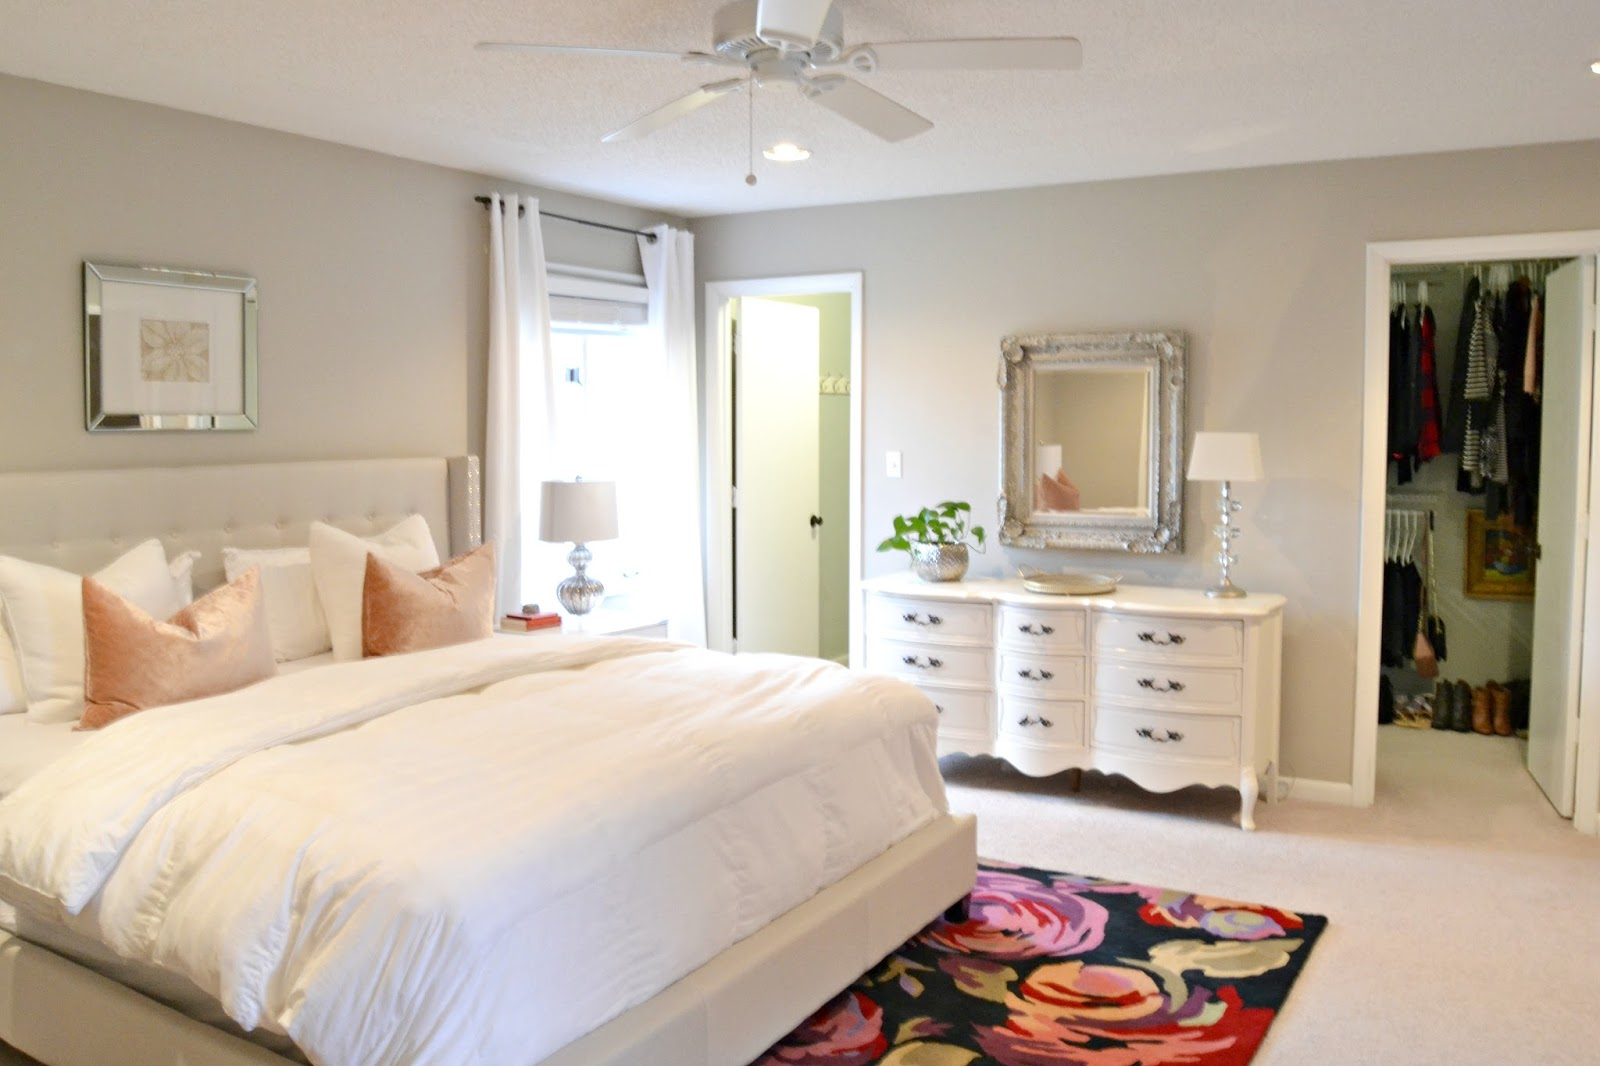 livelovediy: master bedroom decorating updates!